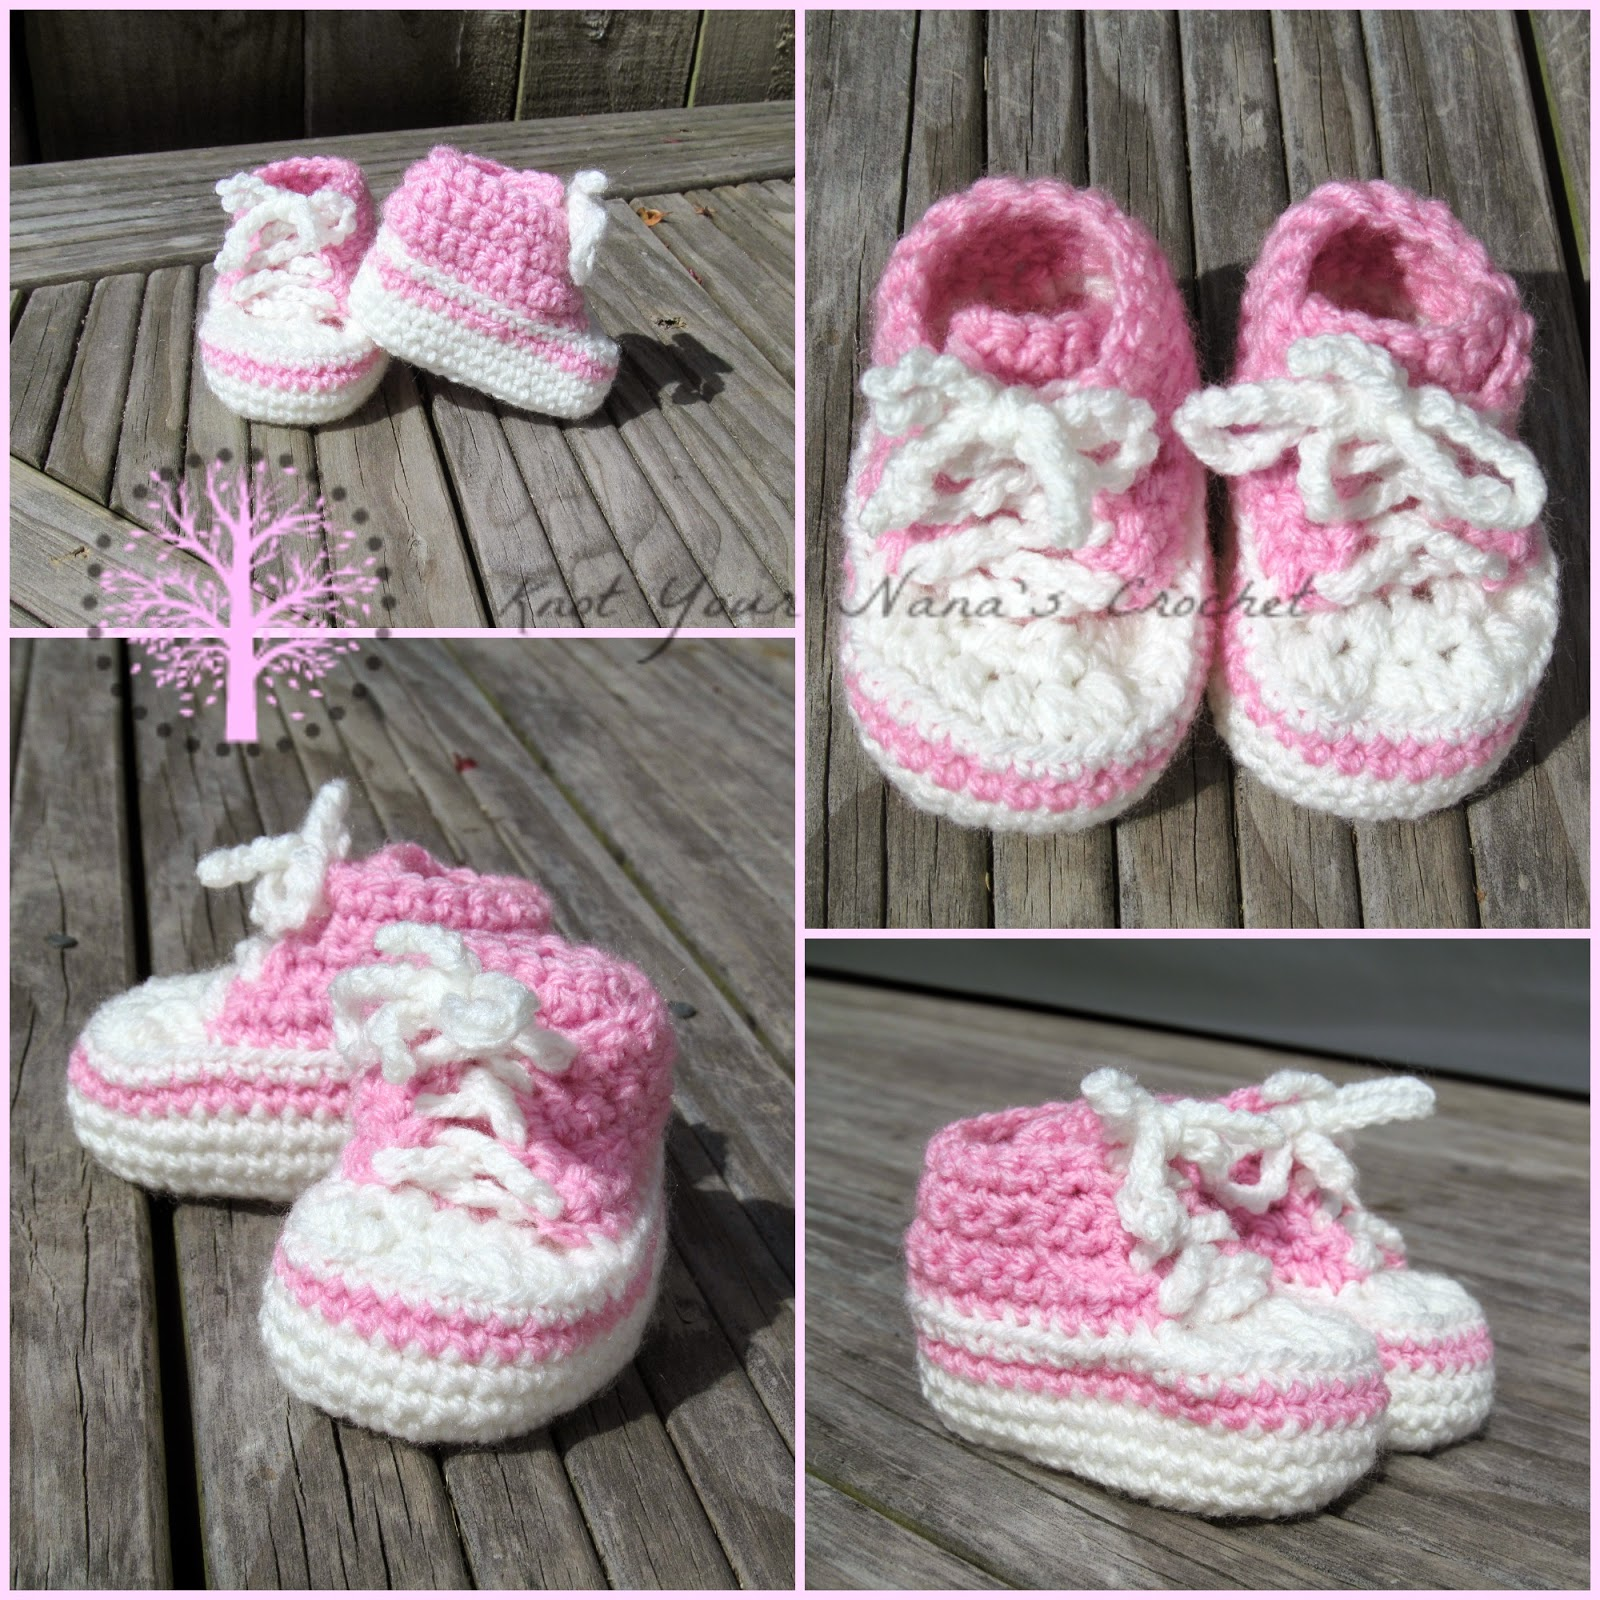 Free Knitting Pattern For Baby Tennis Shoes : Knot Your Nanas Crochet: Crochet Converse Newborn High Tops